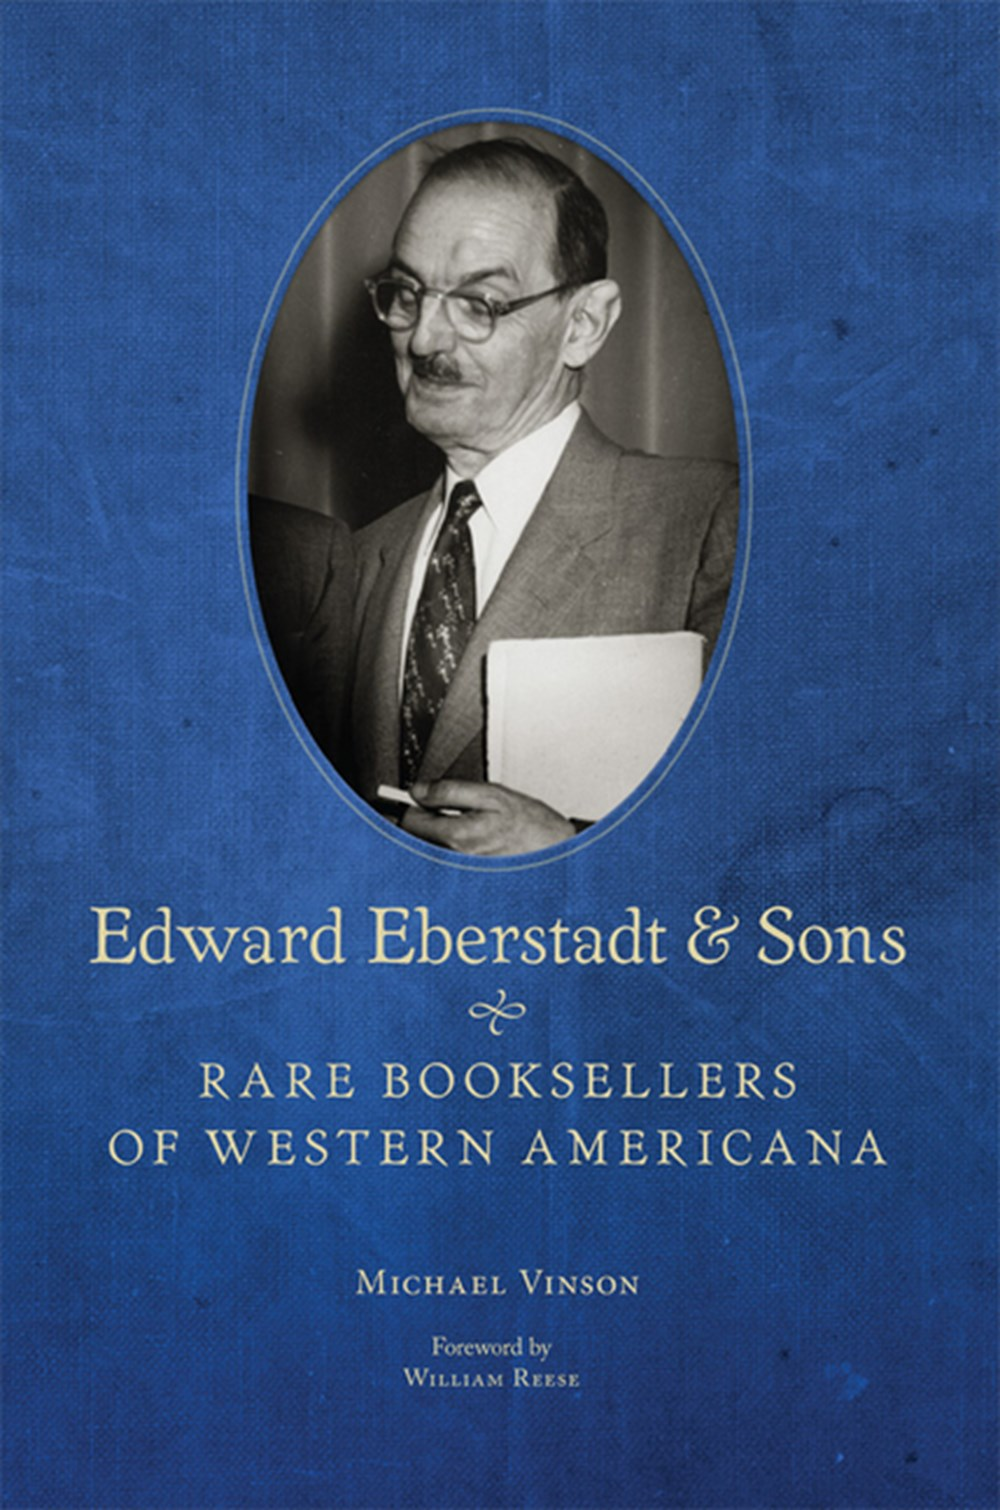 Edward Eberstadt & Sons Rare Booksellers of Western Americana